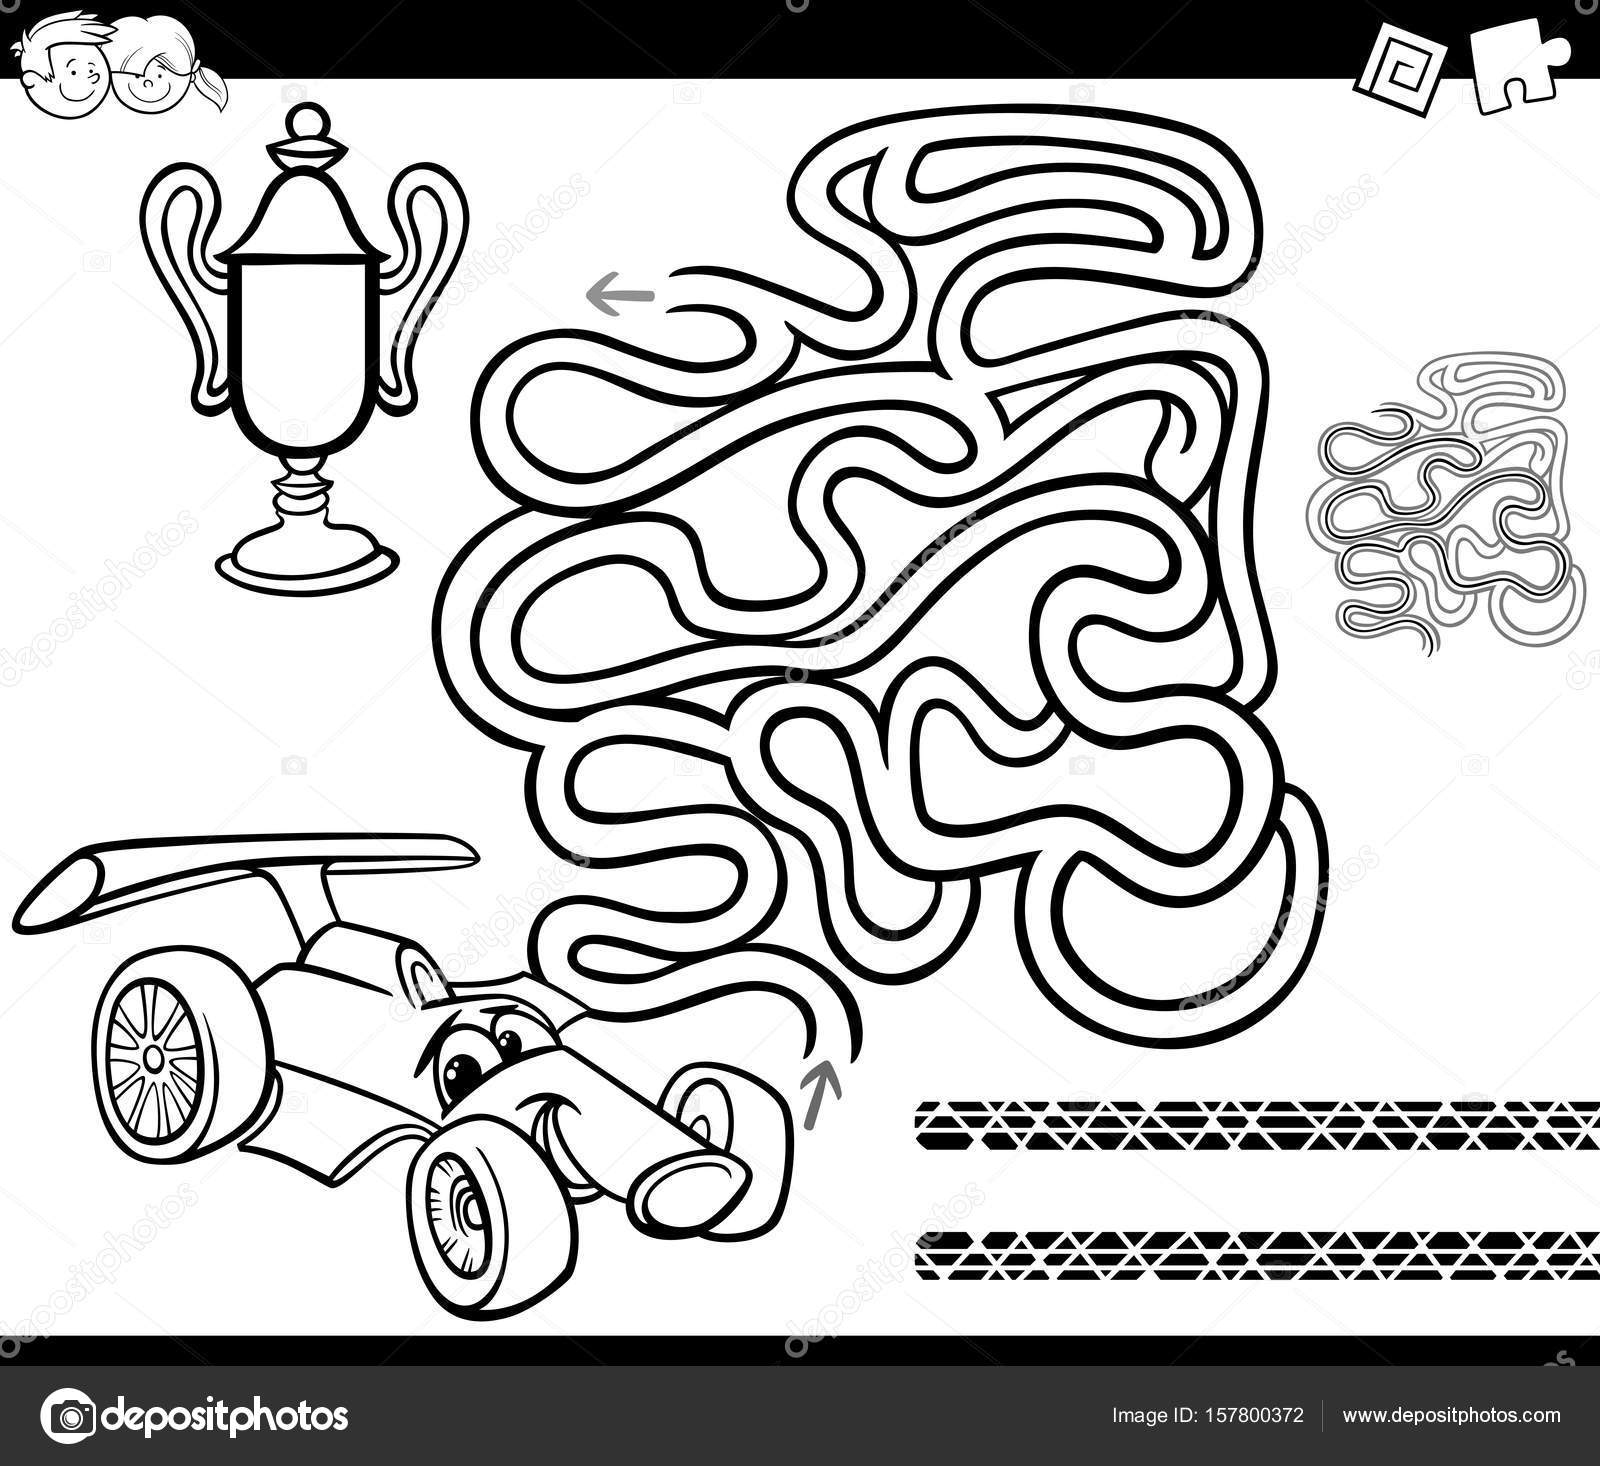 maze with race car coloring page u2014 stock vector izakowski 157800372